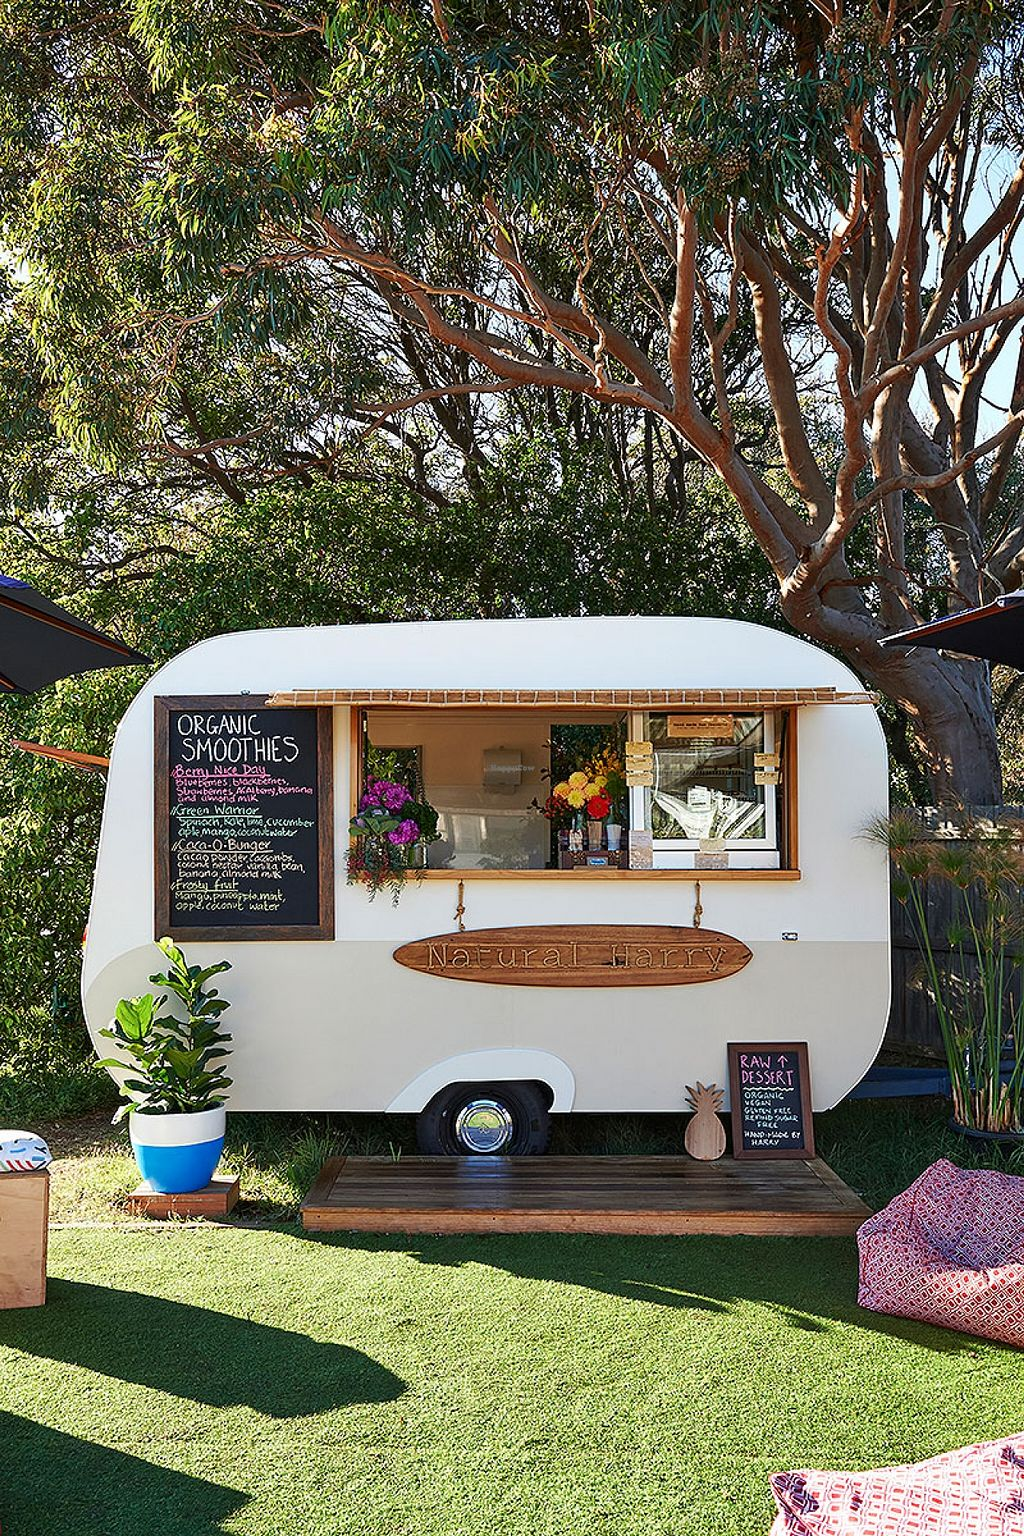 "Photo of CLOSED: Natural Harry - Food Trailer  by <a href=""/members/profile/Harriet%20Birrell"">Harriet Birrell</a> <br/>Gorgeous setting on the main street of a beautiful iconic Victorian coastal town.  <br/> December 13, 2015  - <a href='/contact/abuse/image/67021/128359'>Report</a>"